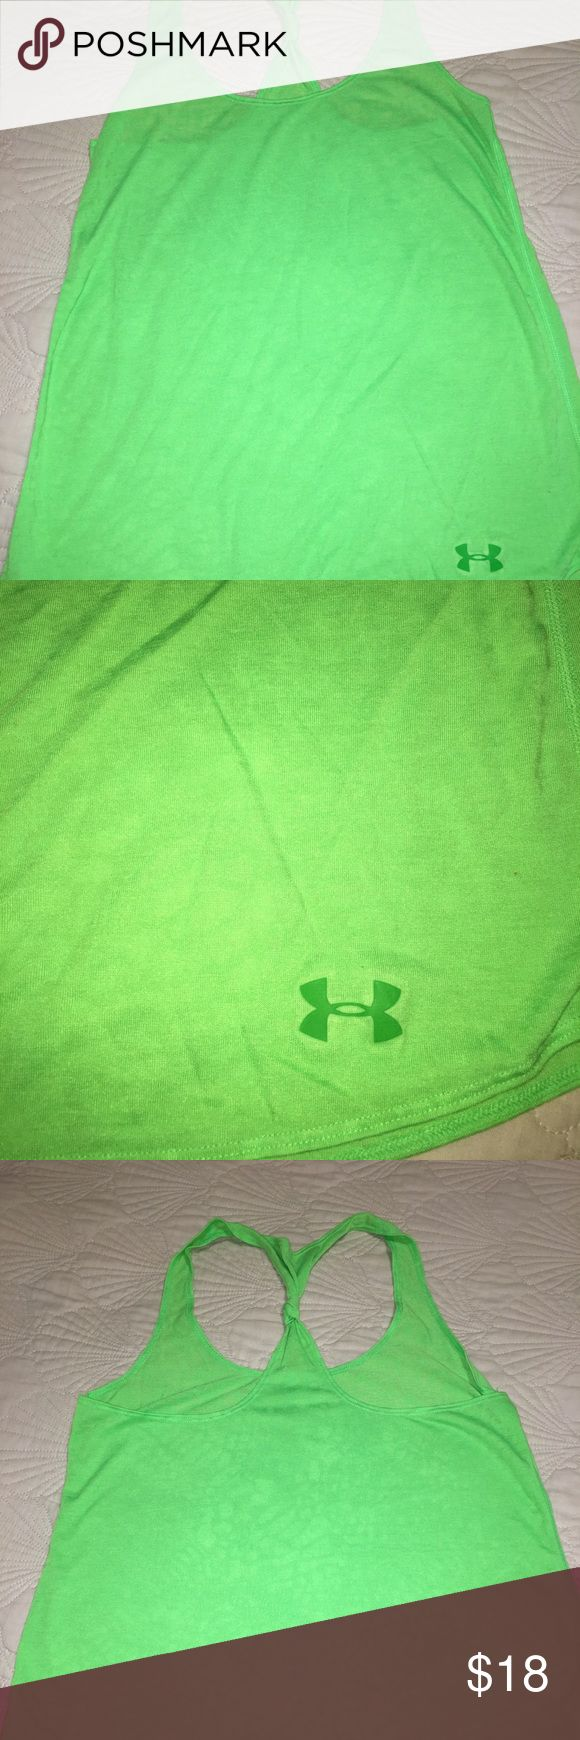 Under Armour ladies running tank Neon green under armour ladies size small running top! Practically brand-new, neon green! Super cute! Smoke free home Under Armour Tops Tank Tops